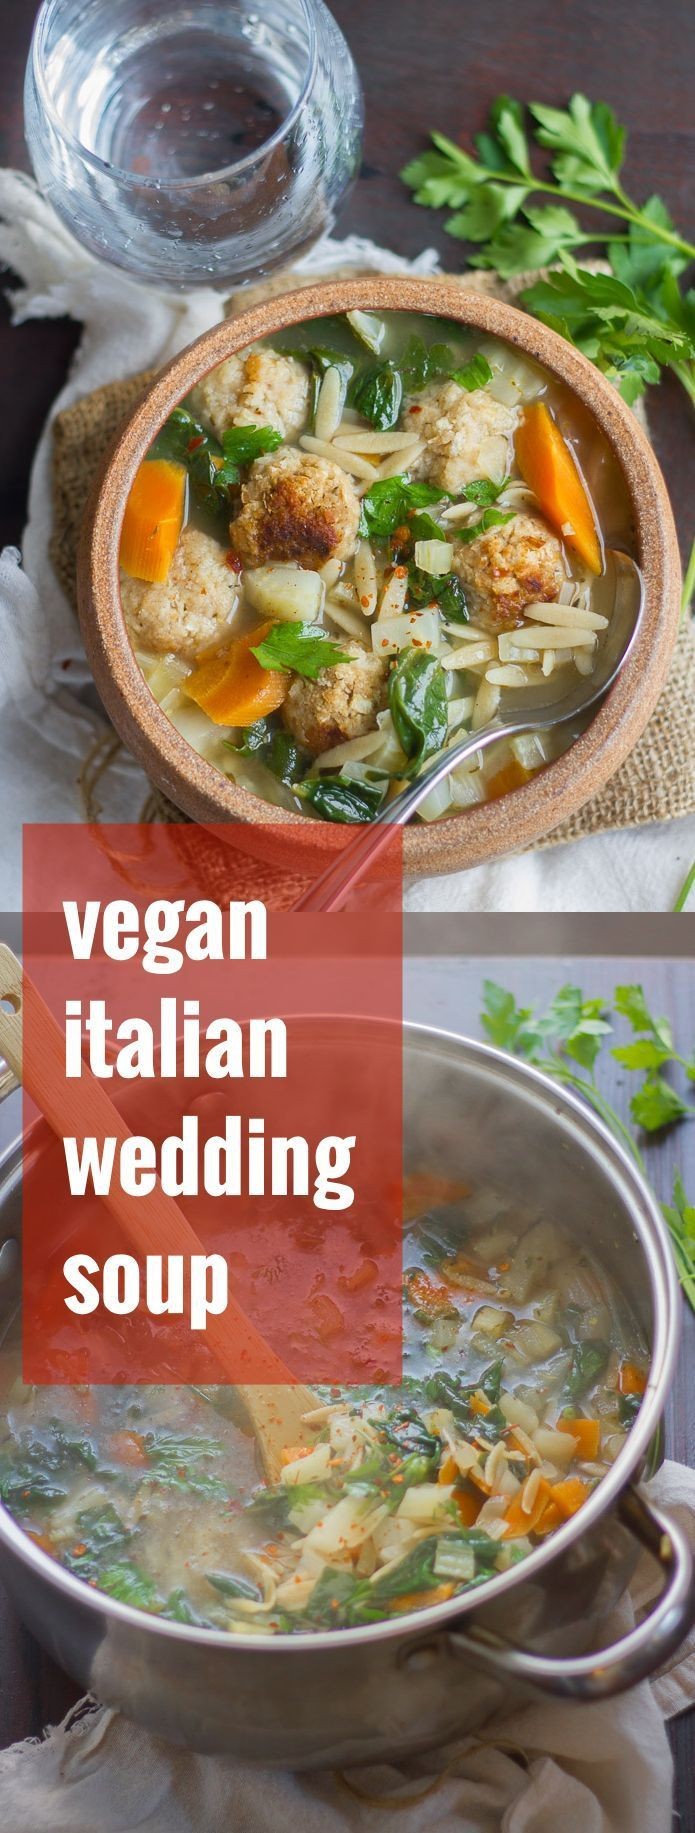 Vegan Italian Wedding Soup - Connoisseurus Veg